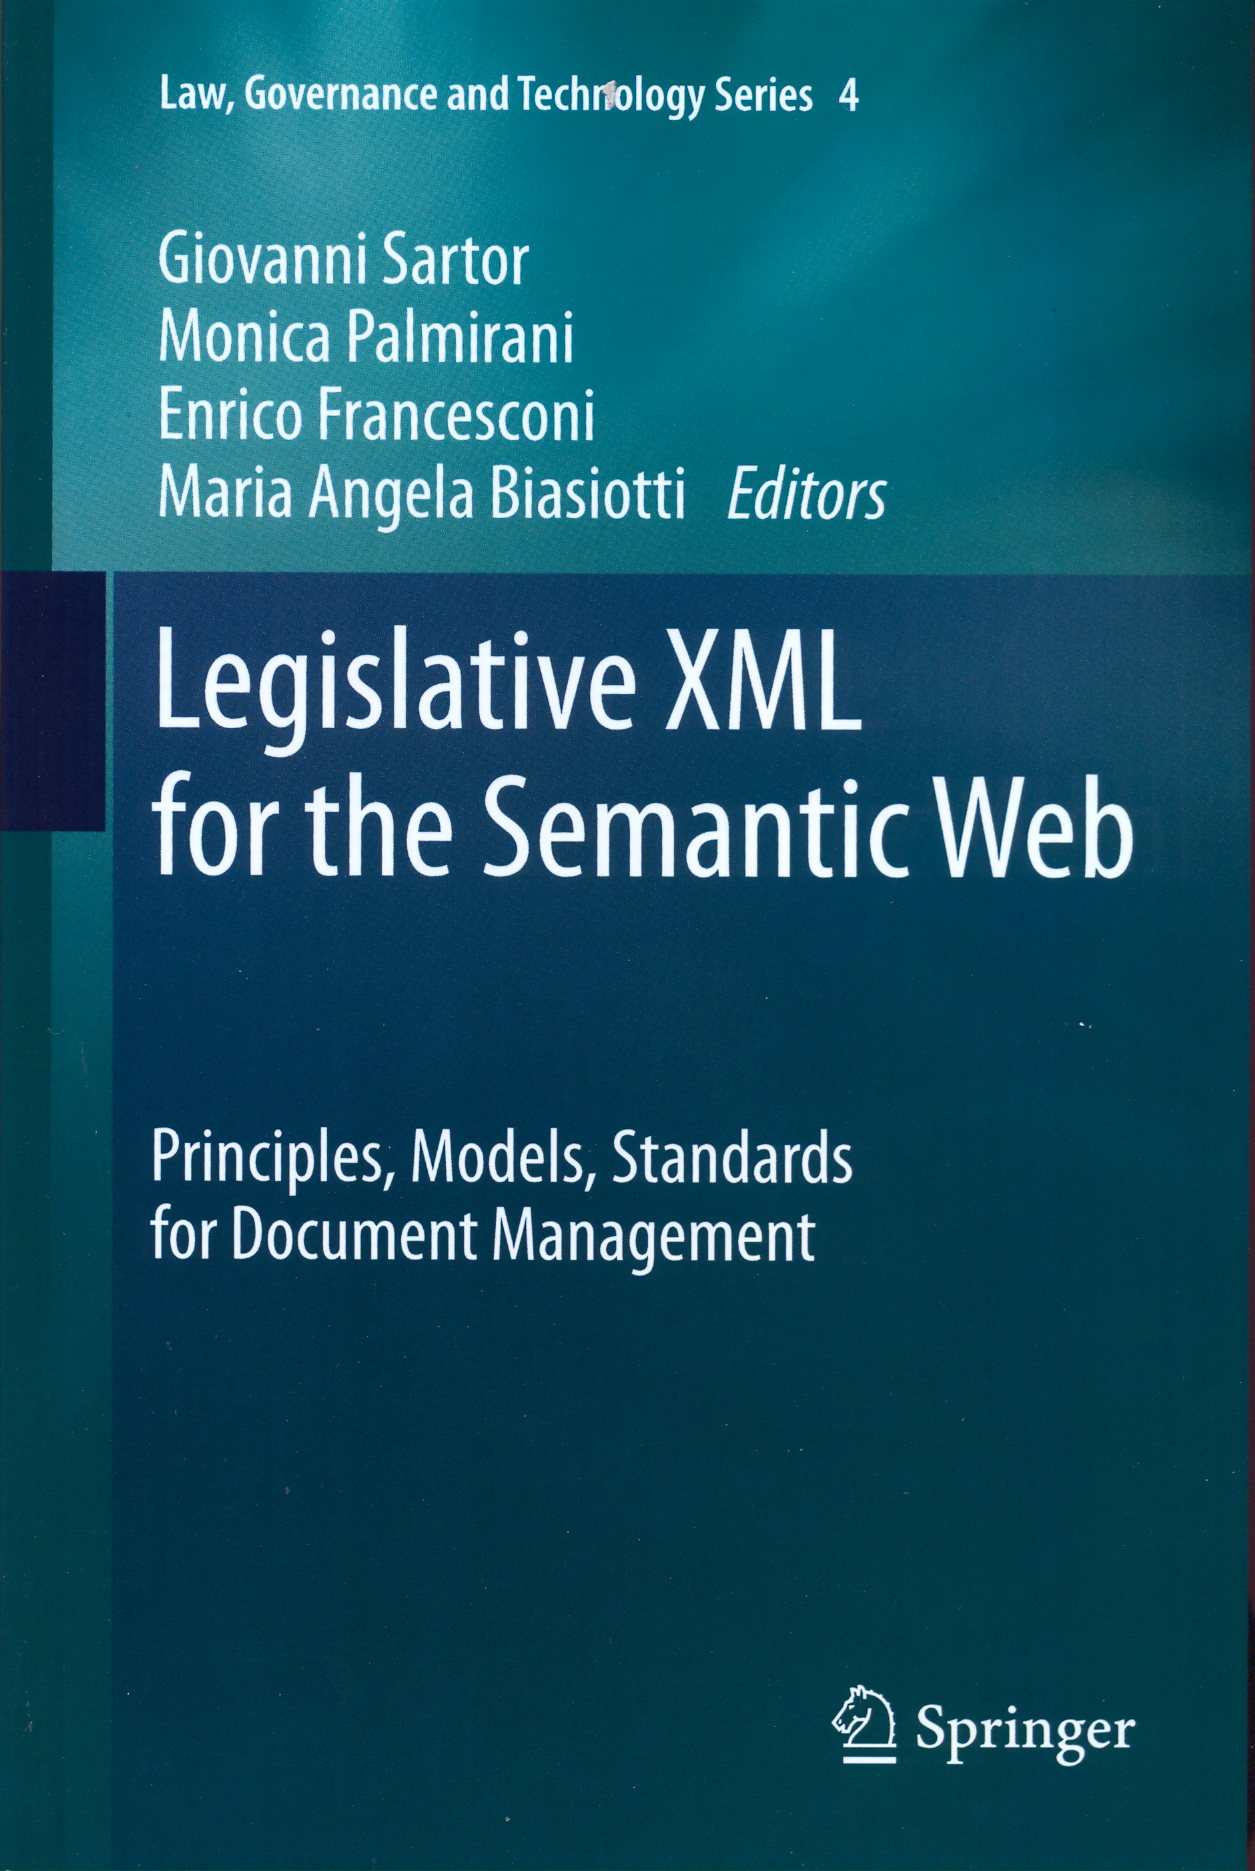 Legislative XML for the Semantic Web. Principles, Models, Standards for Document Management